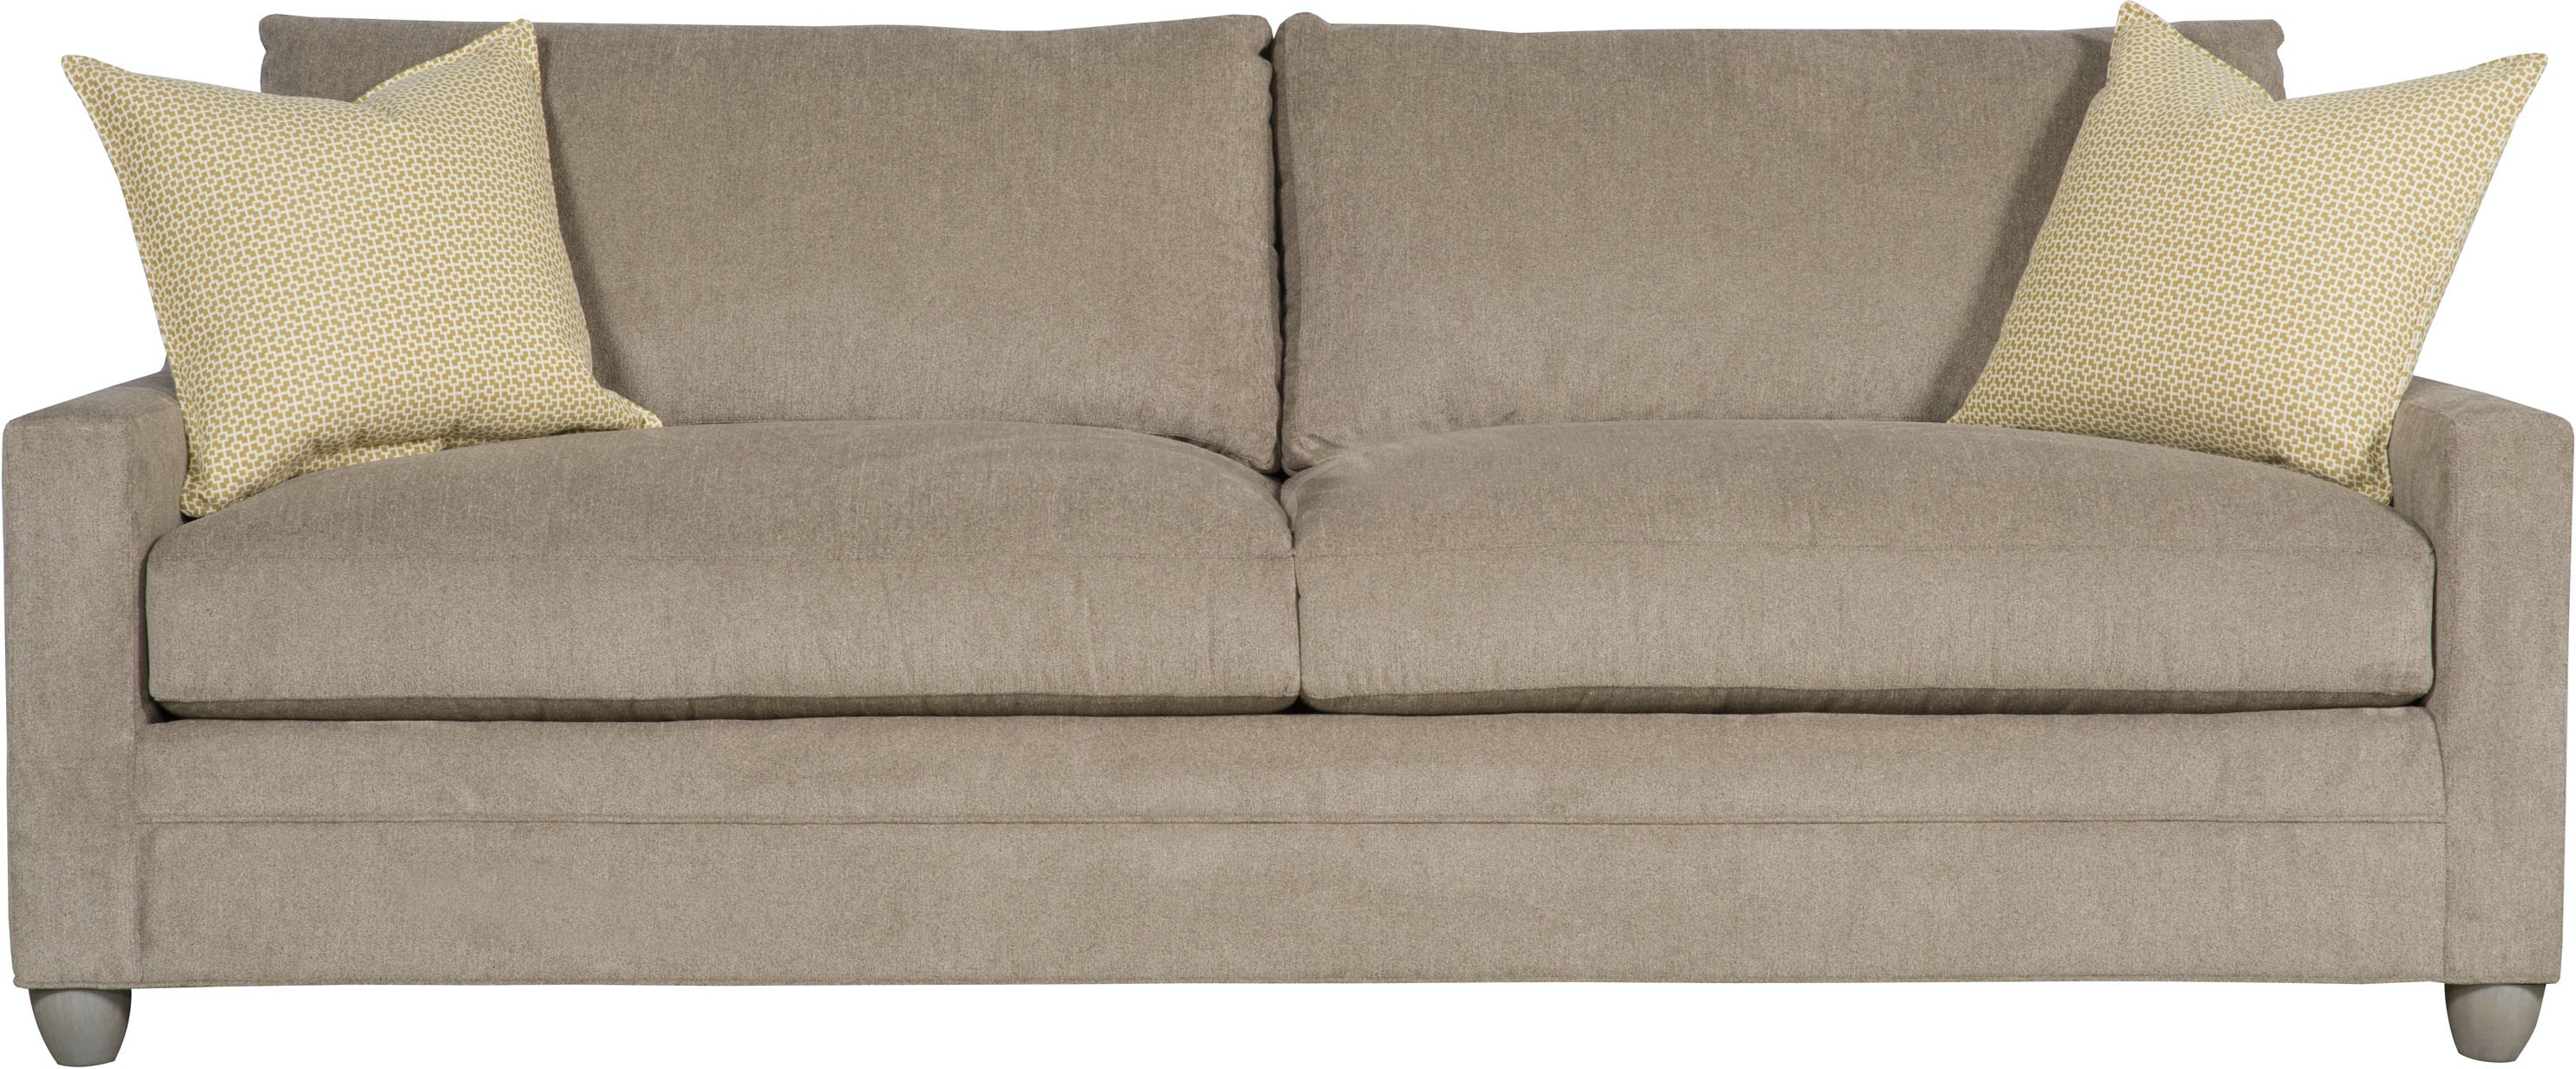 Vanguard Furniture 652 2S Living Room Fairgrove Sofa